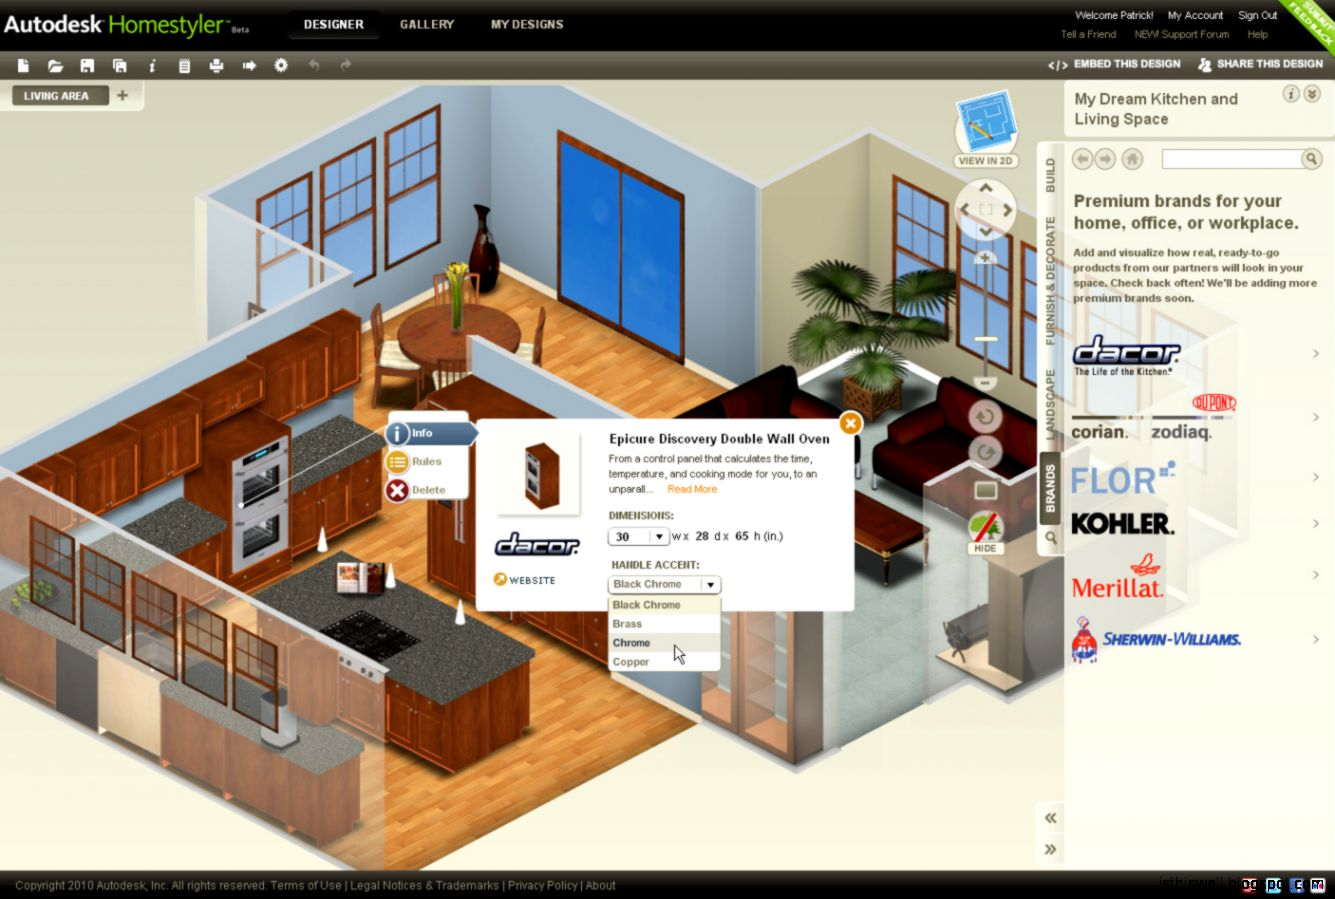 Autodesk Launches Easy to Use Free 2D and 3D Online Home Design